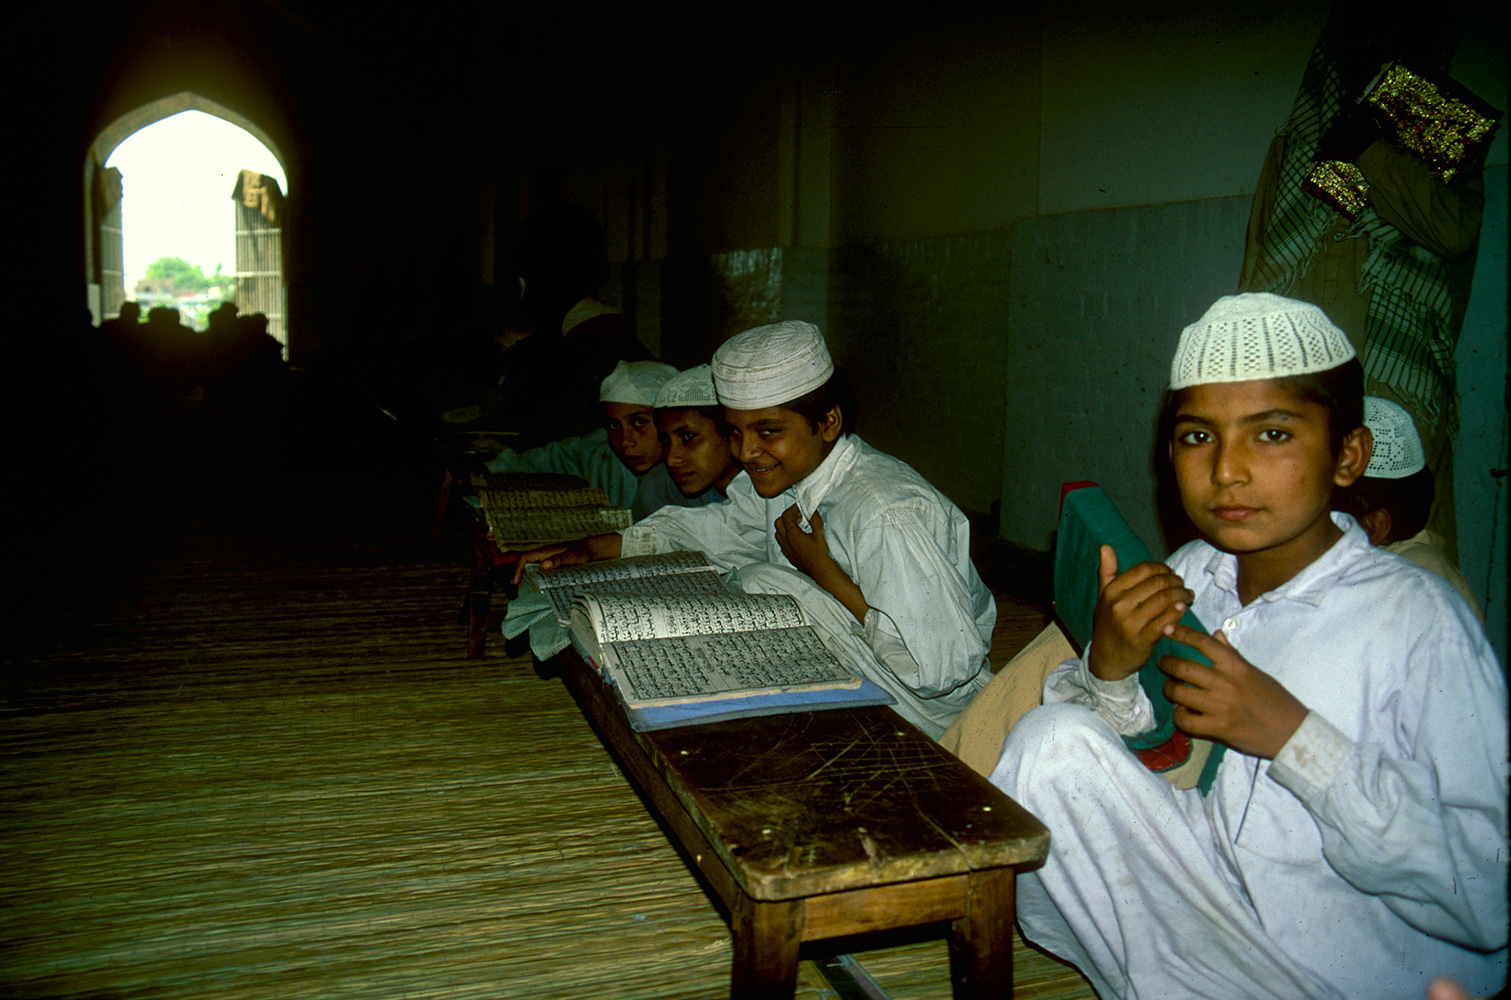 Young boys at the Koranic school in the Eid Gah masjid, MultanCanon EOS 500, 28mm, Fuji Velvia